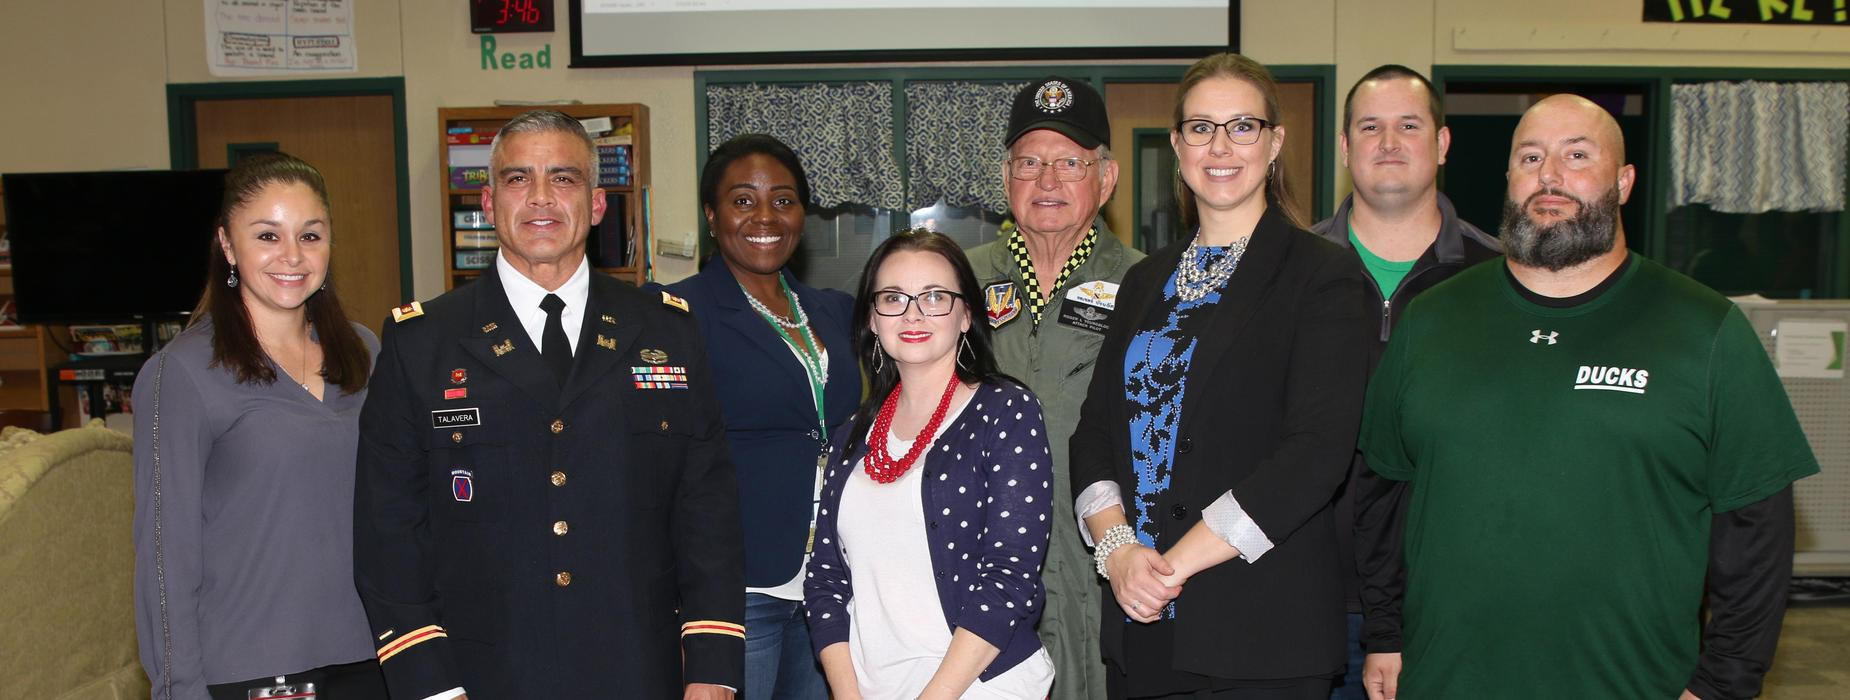 Veterans Day Reception